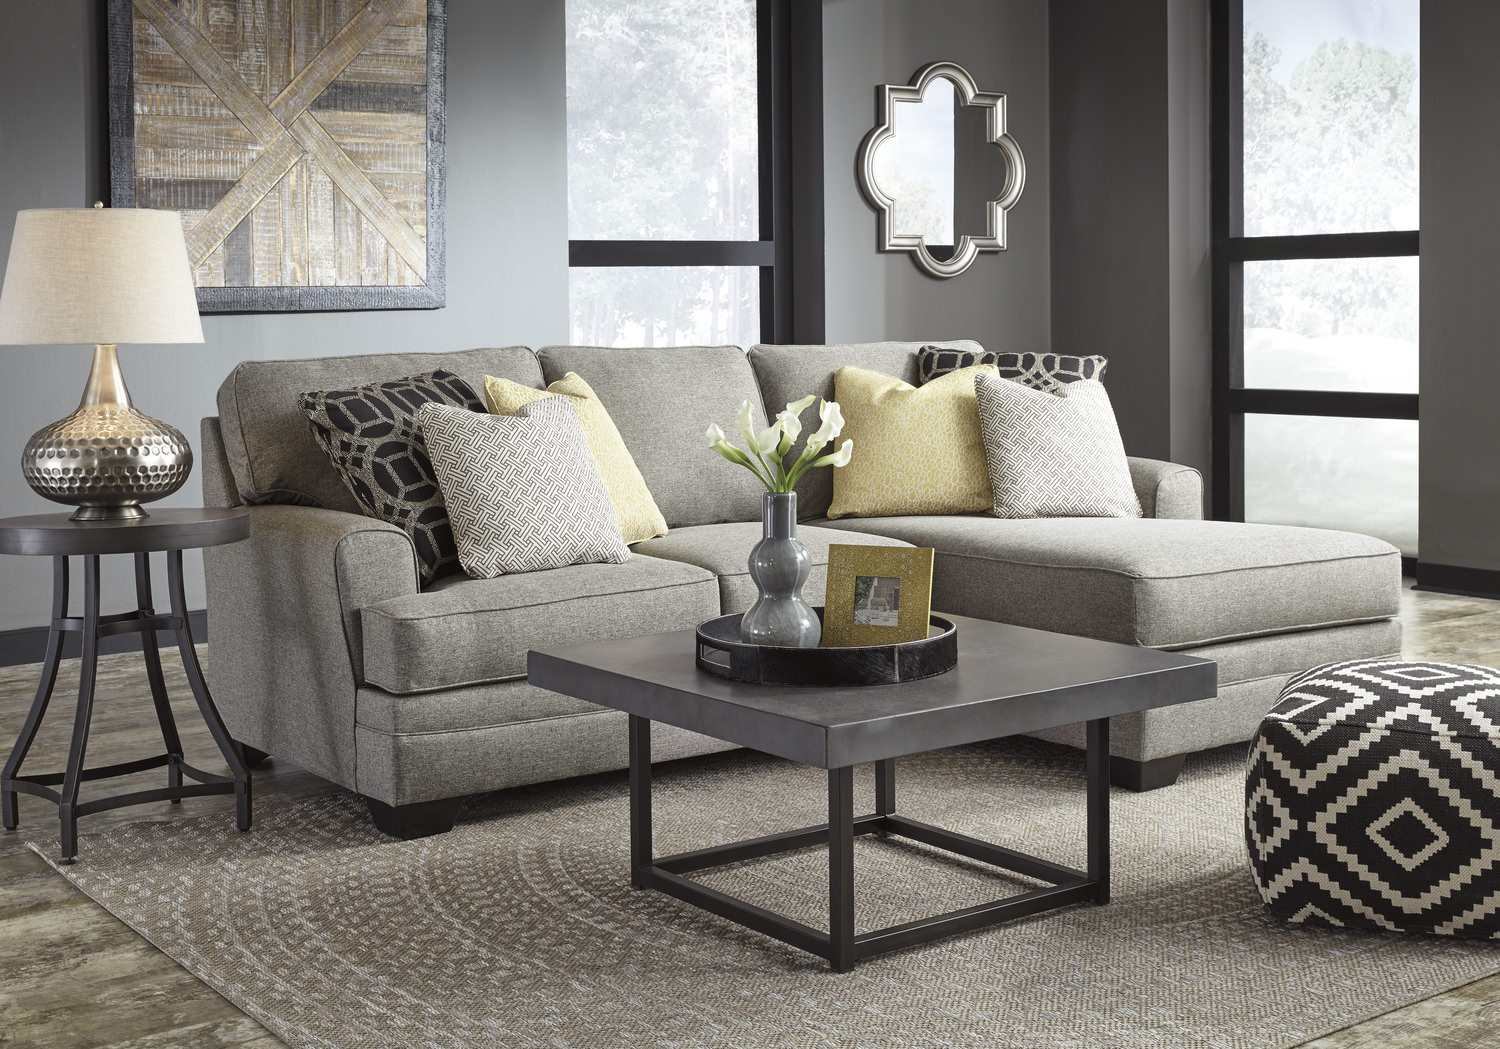 Image of: 3 Piece Living Room Set Cool